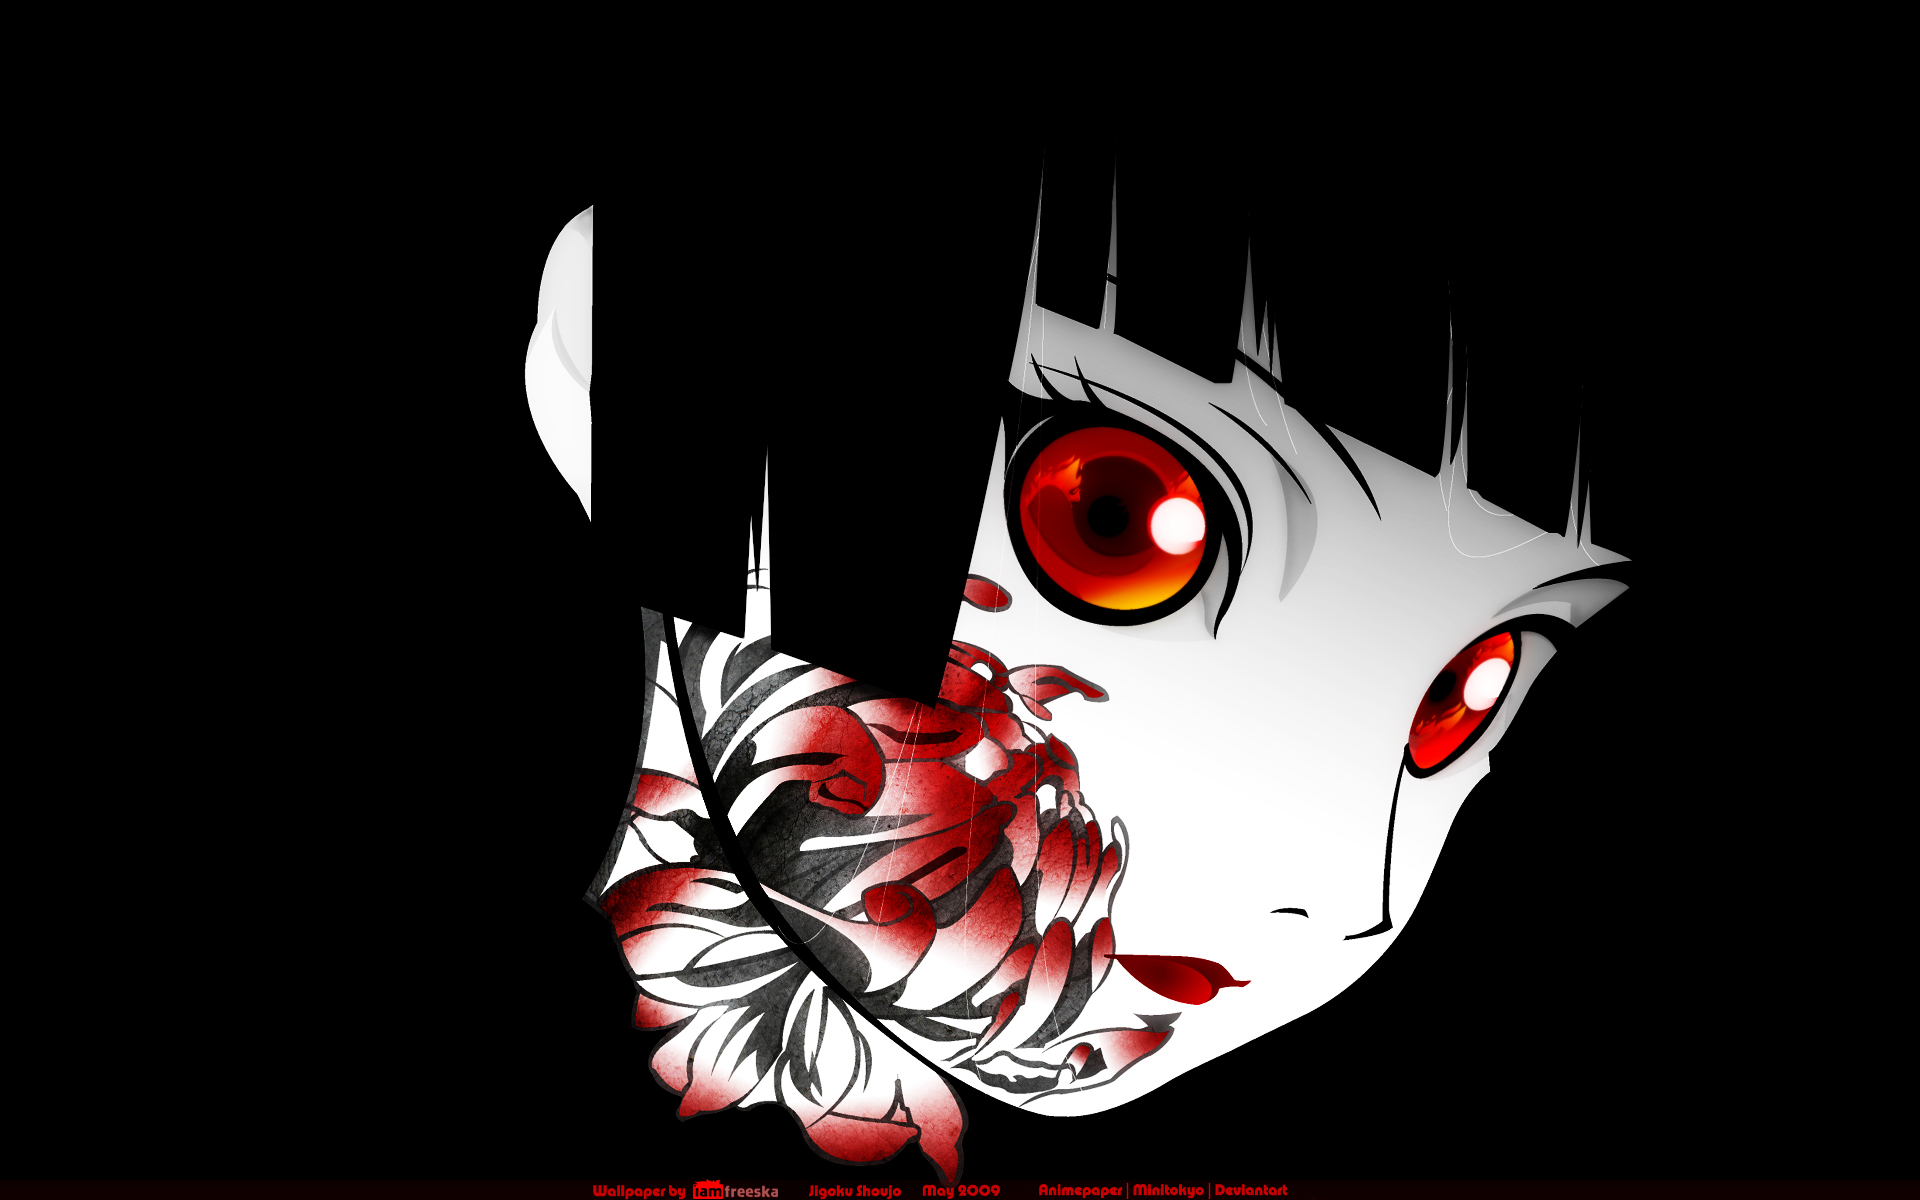 Dark anime clipart widescreen  ClipartFest 1920x1200